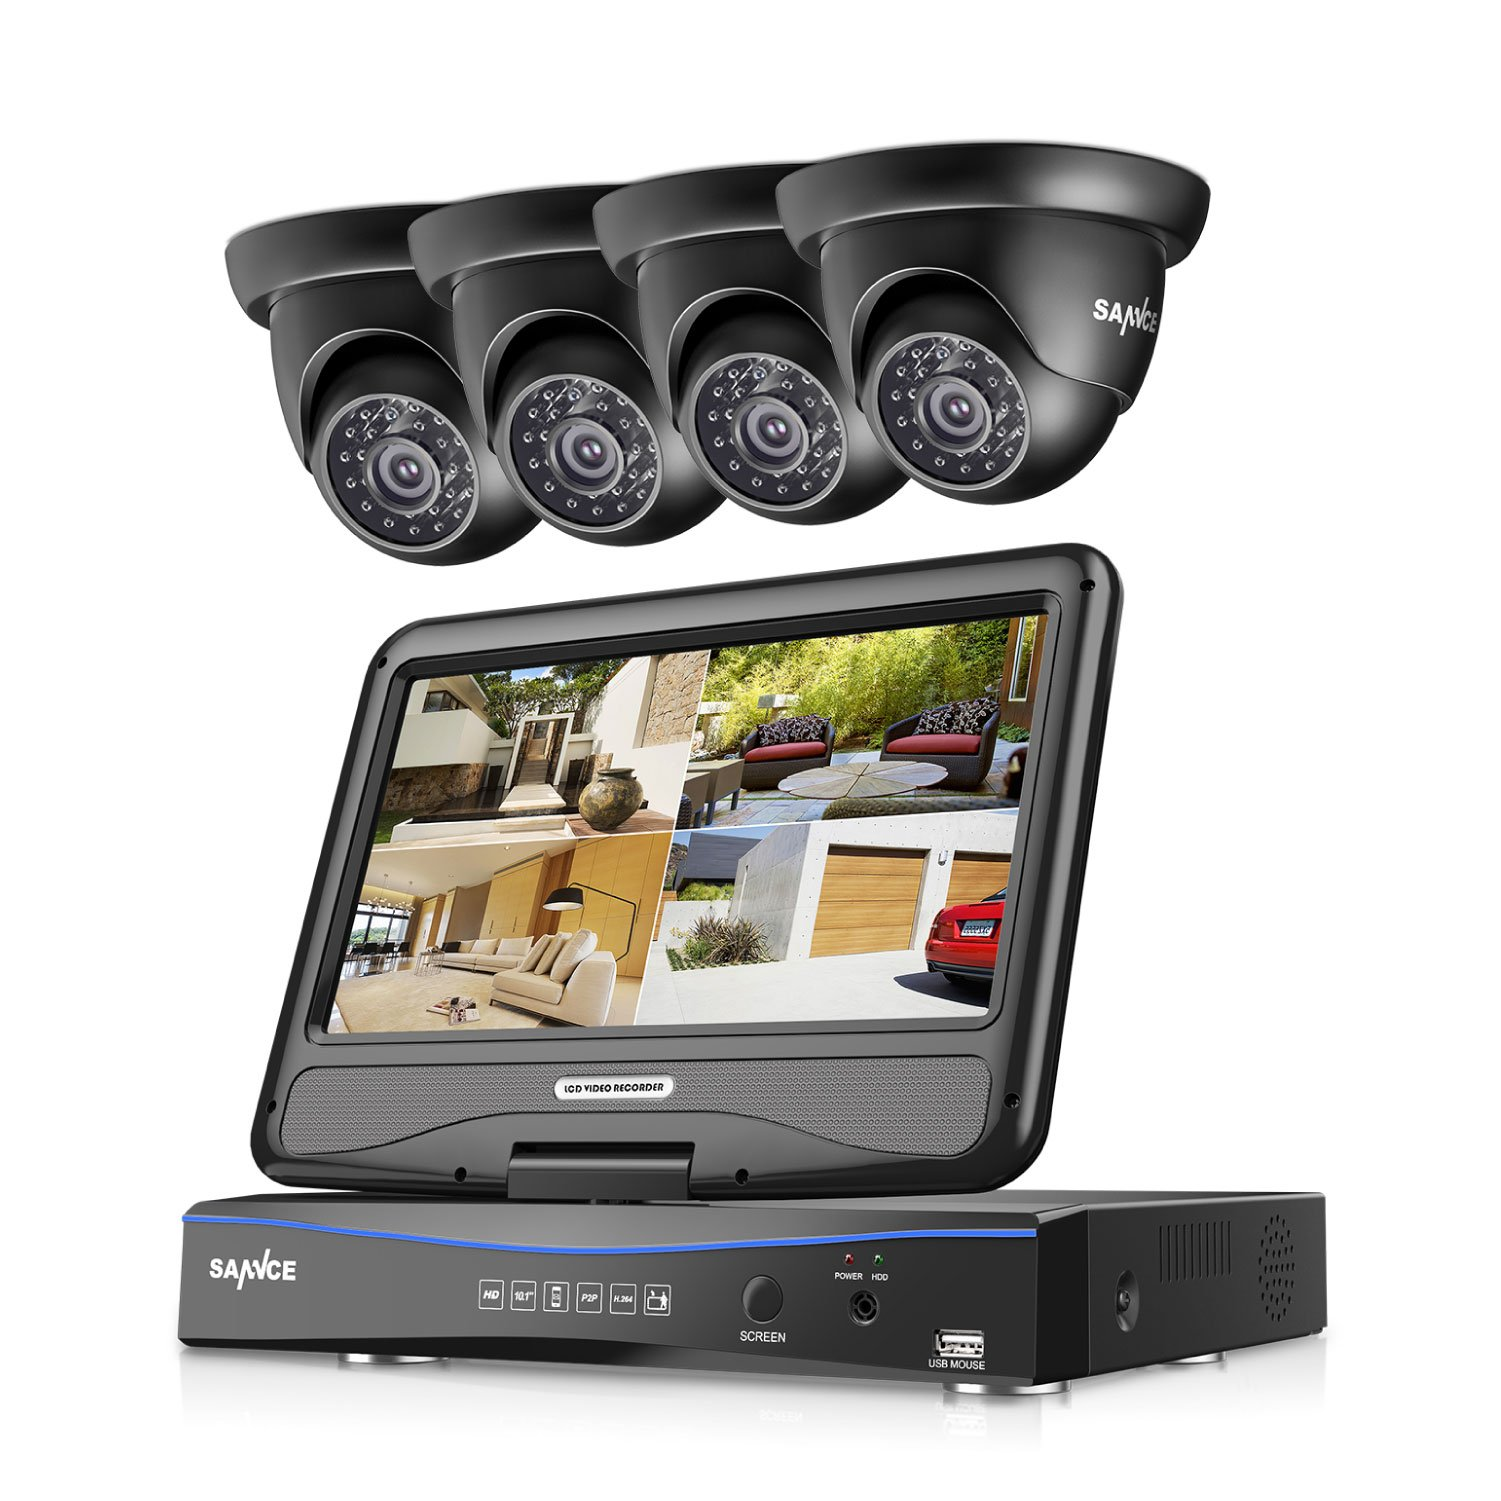 SANNCE 4CH 720P DVR Security Camera System and 4pcs 1.0 MP 1280TVL Bullet CCTV Cameras, Built-in 10.1 inches Monitor, Support P2P Technology, QR Code Scan Phone Remote Access Viewing - NO HDD by SANNCE